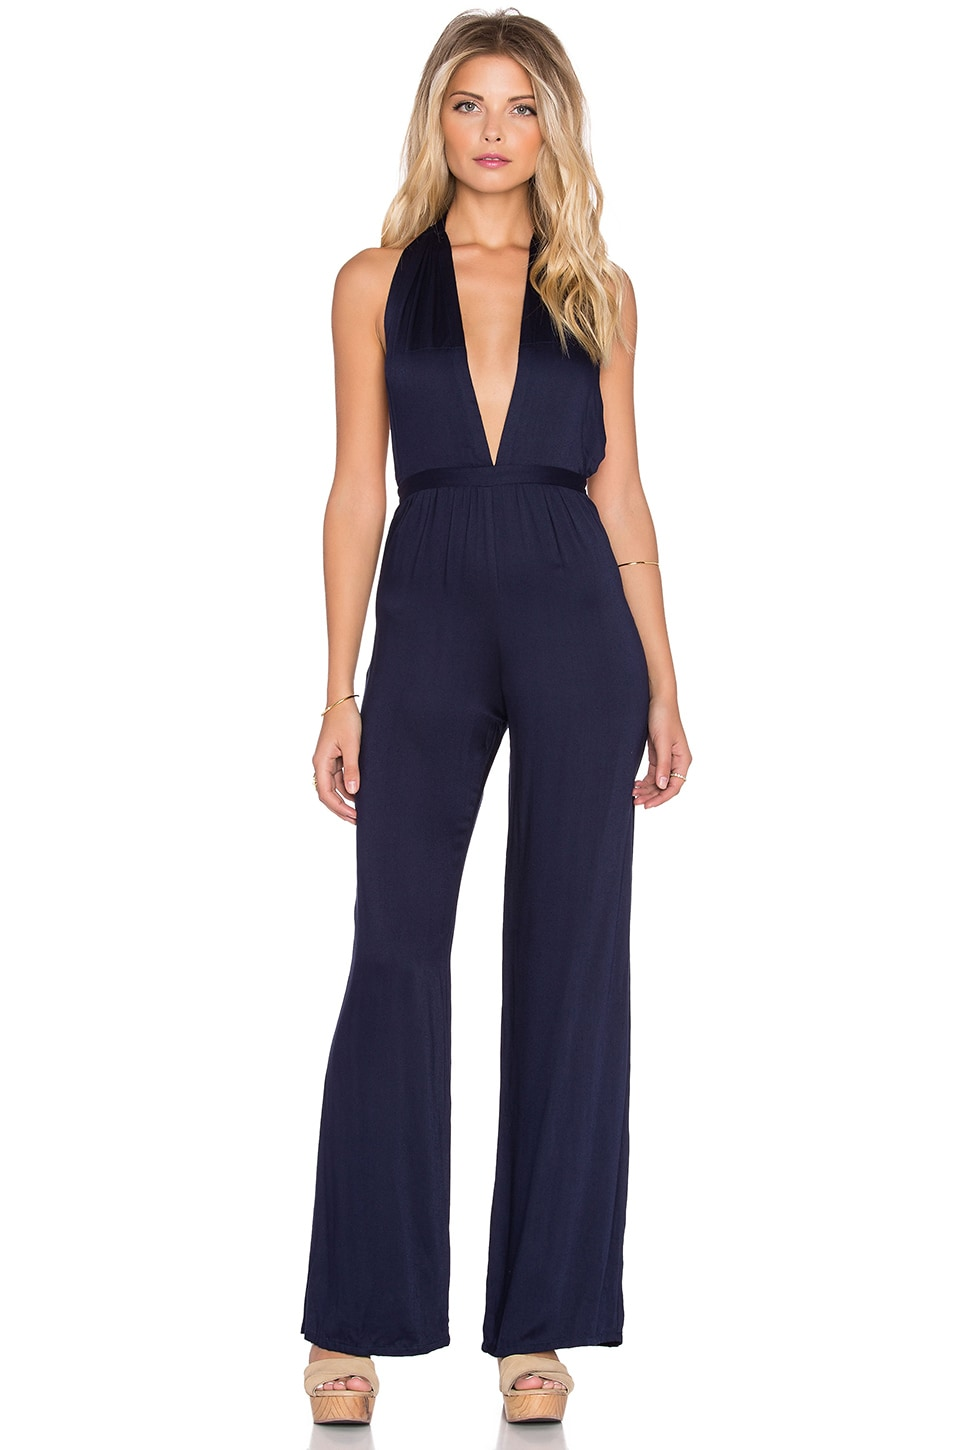 FAITHFULL THE BRAND Lola Satin Jumpsuit in Plain Midnight Navy